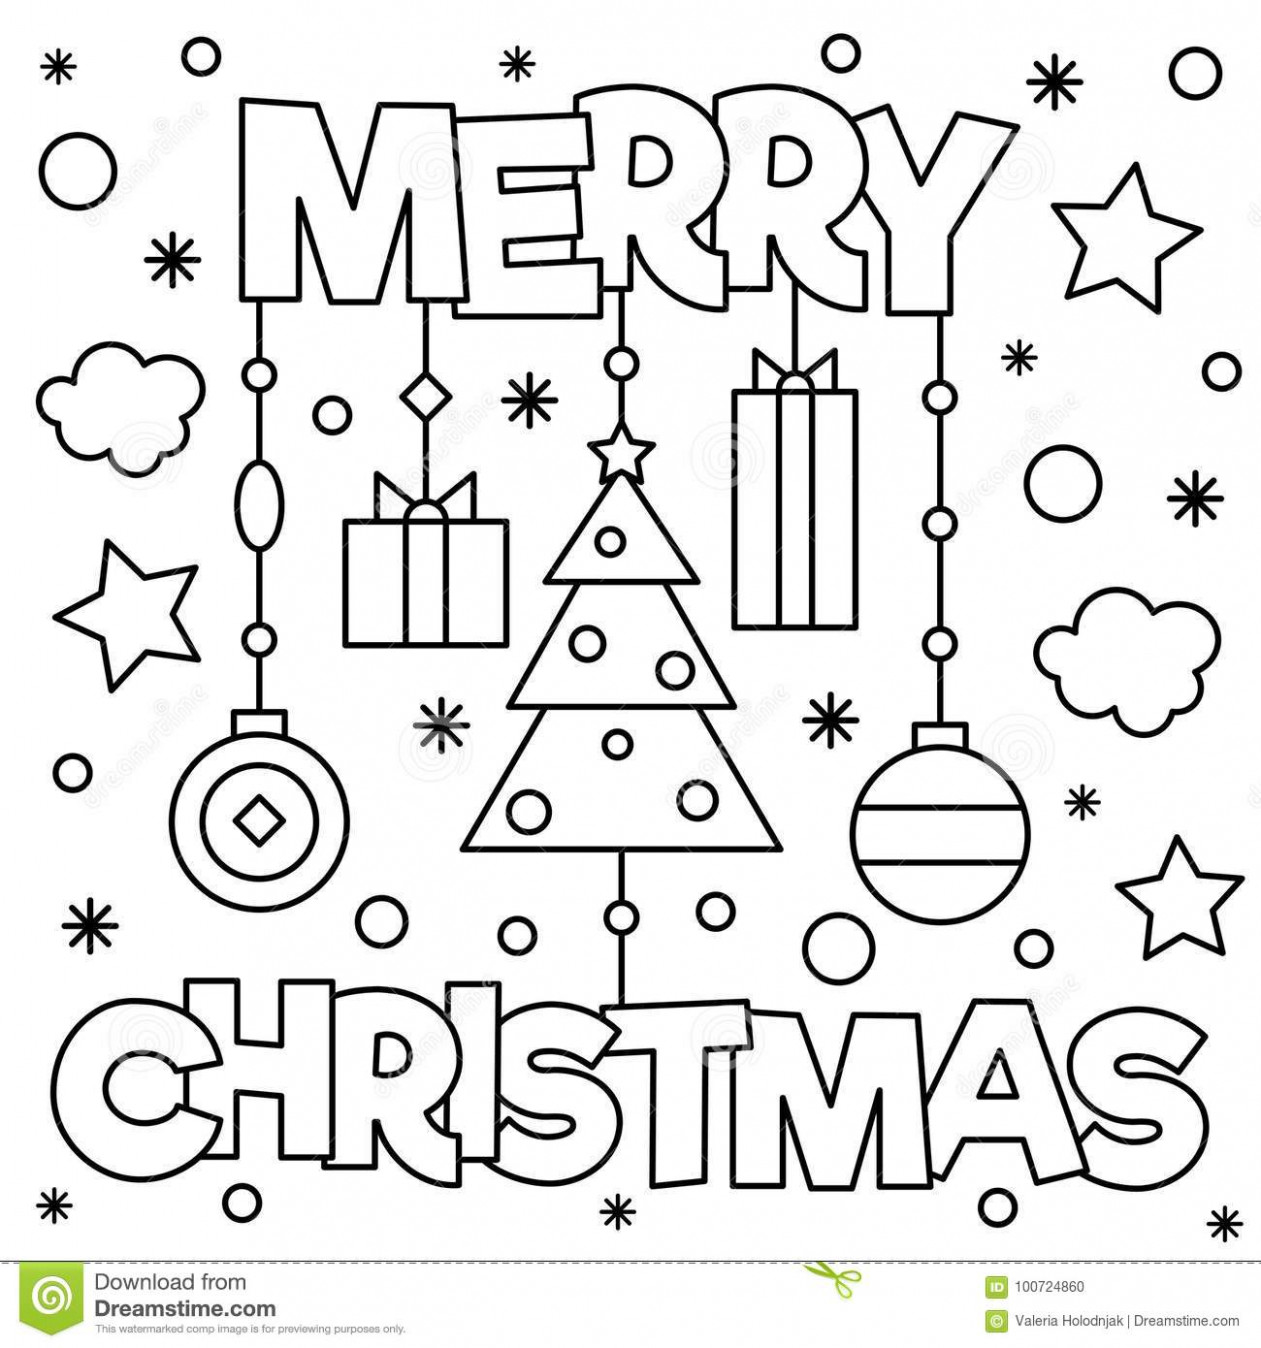 Merry Christmas. Coloring Page. Vector Illustration. Stock Vector ...